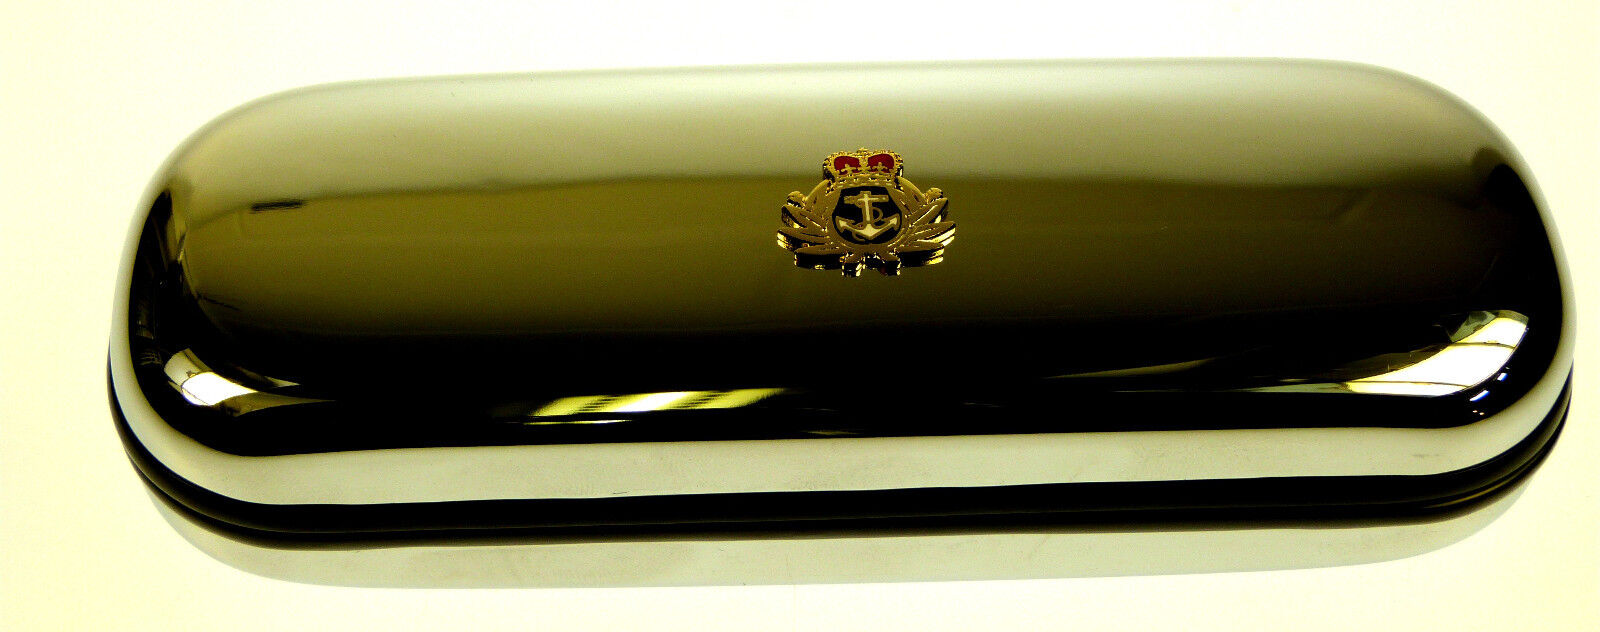 THE ROYAL NAVY SUBMARINER RN BADGE CRESTED MILITARY GLASSES PEN OR DARTS CASE